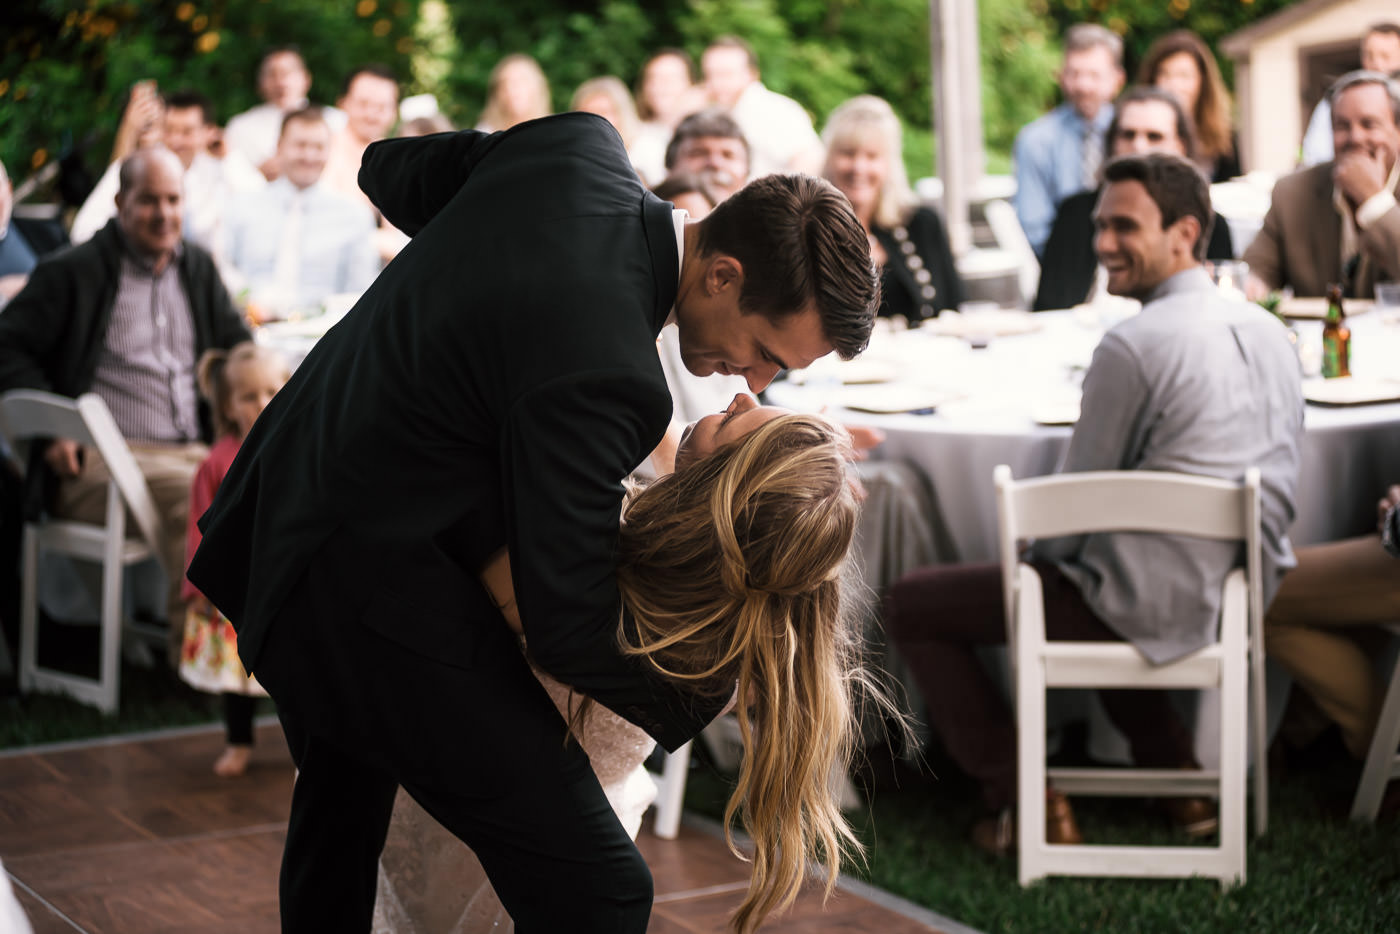 Couple shares in their first dance together and gets lost in romance as the groom dips his new bride.